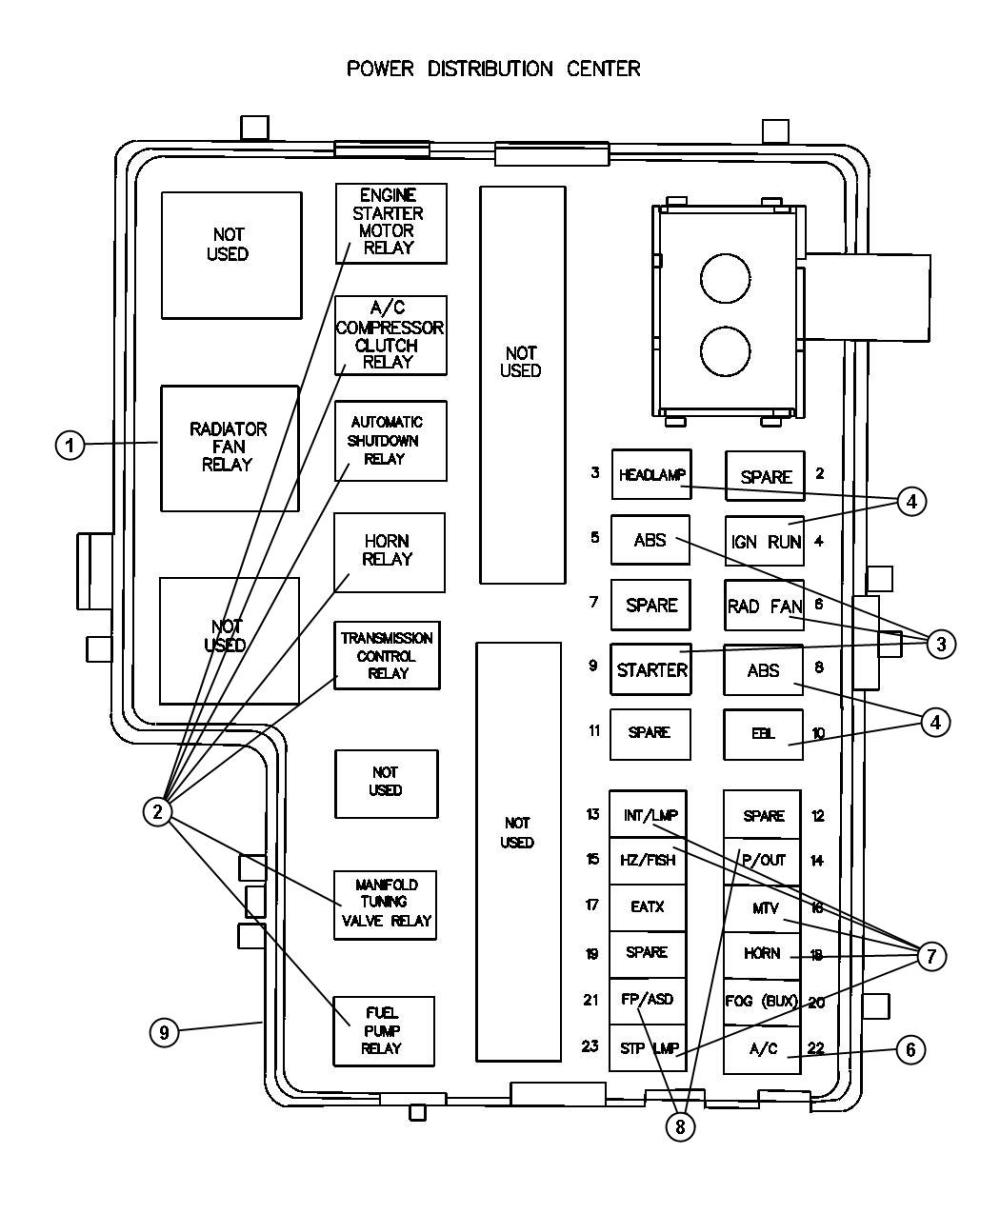 medium resolution of neon fuse and relay box automotive wiring diagrams 2004 jaguar fuse box neon fuse and relay box